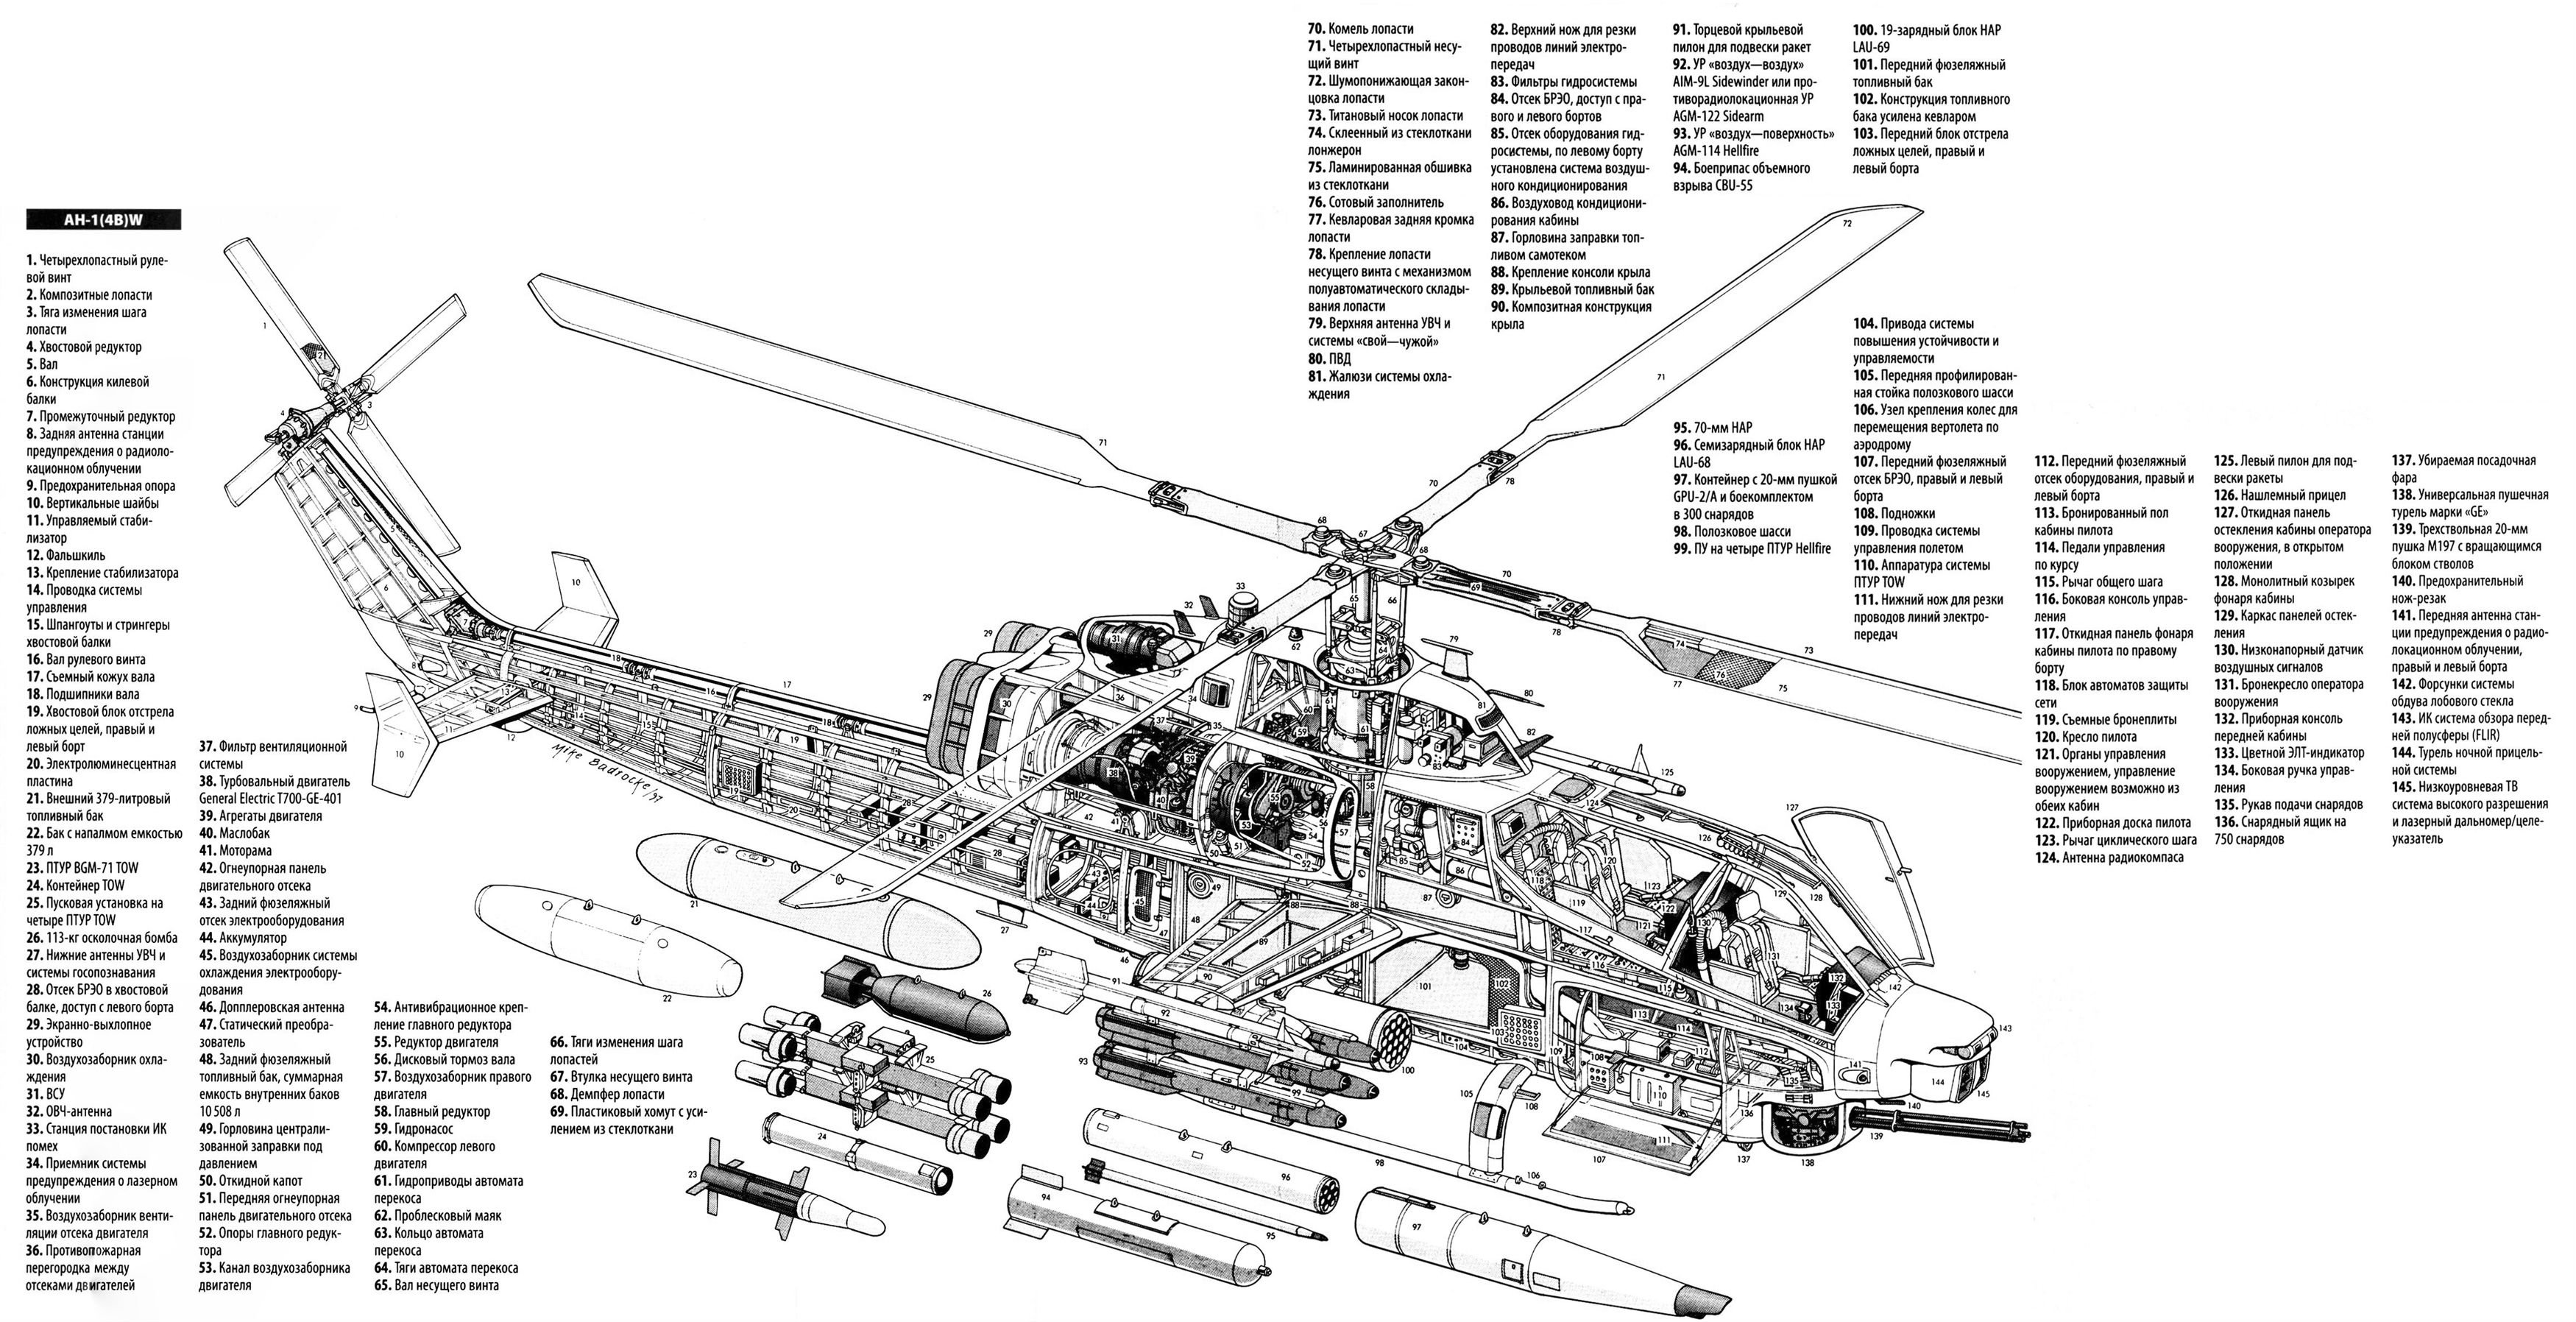 Ah 1w Super Cobra Helicopter Military Weapon